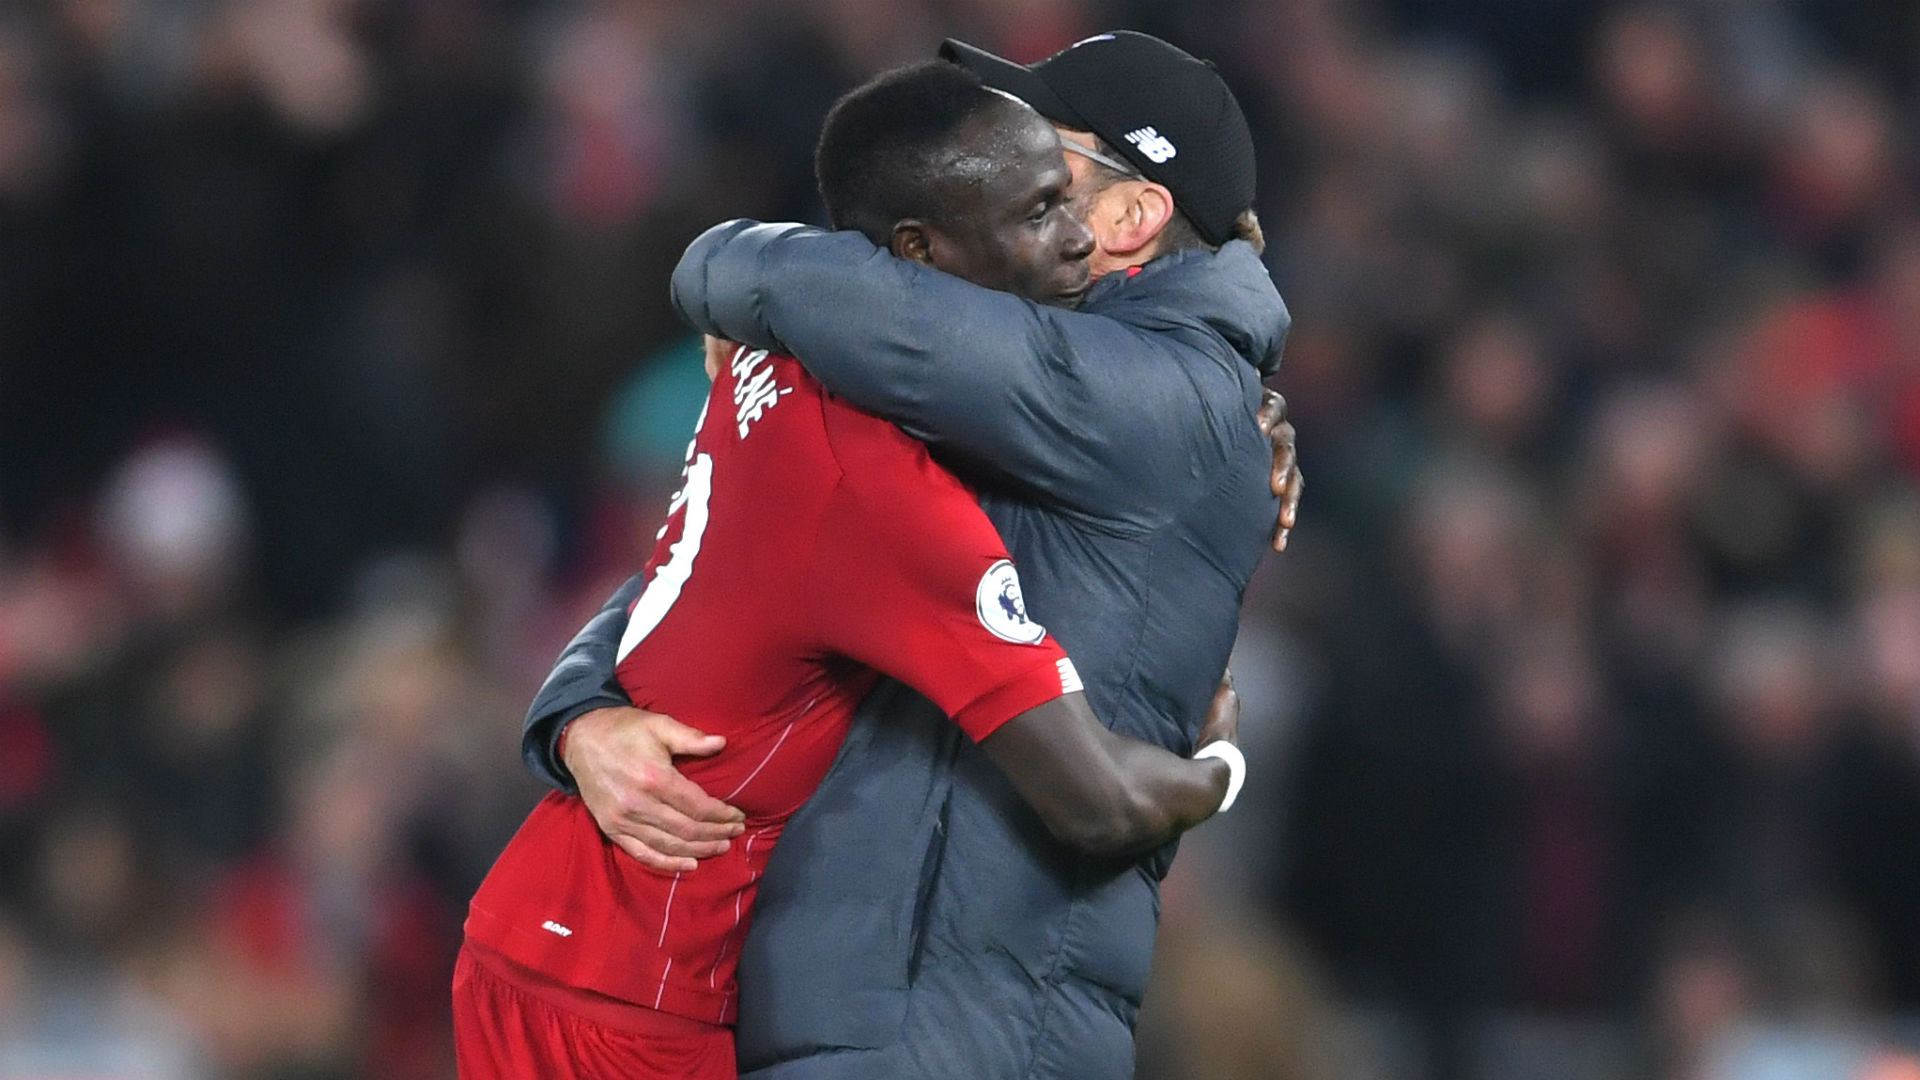 Mane masterclass piles misery on sorry Silva - The talking points as Liverpool enjoy derby delight